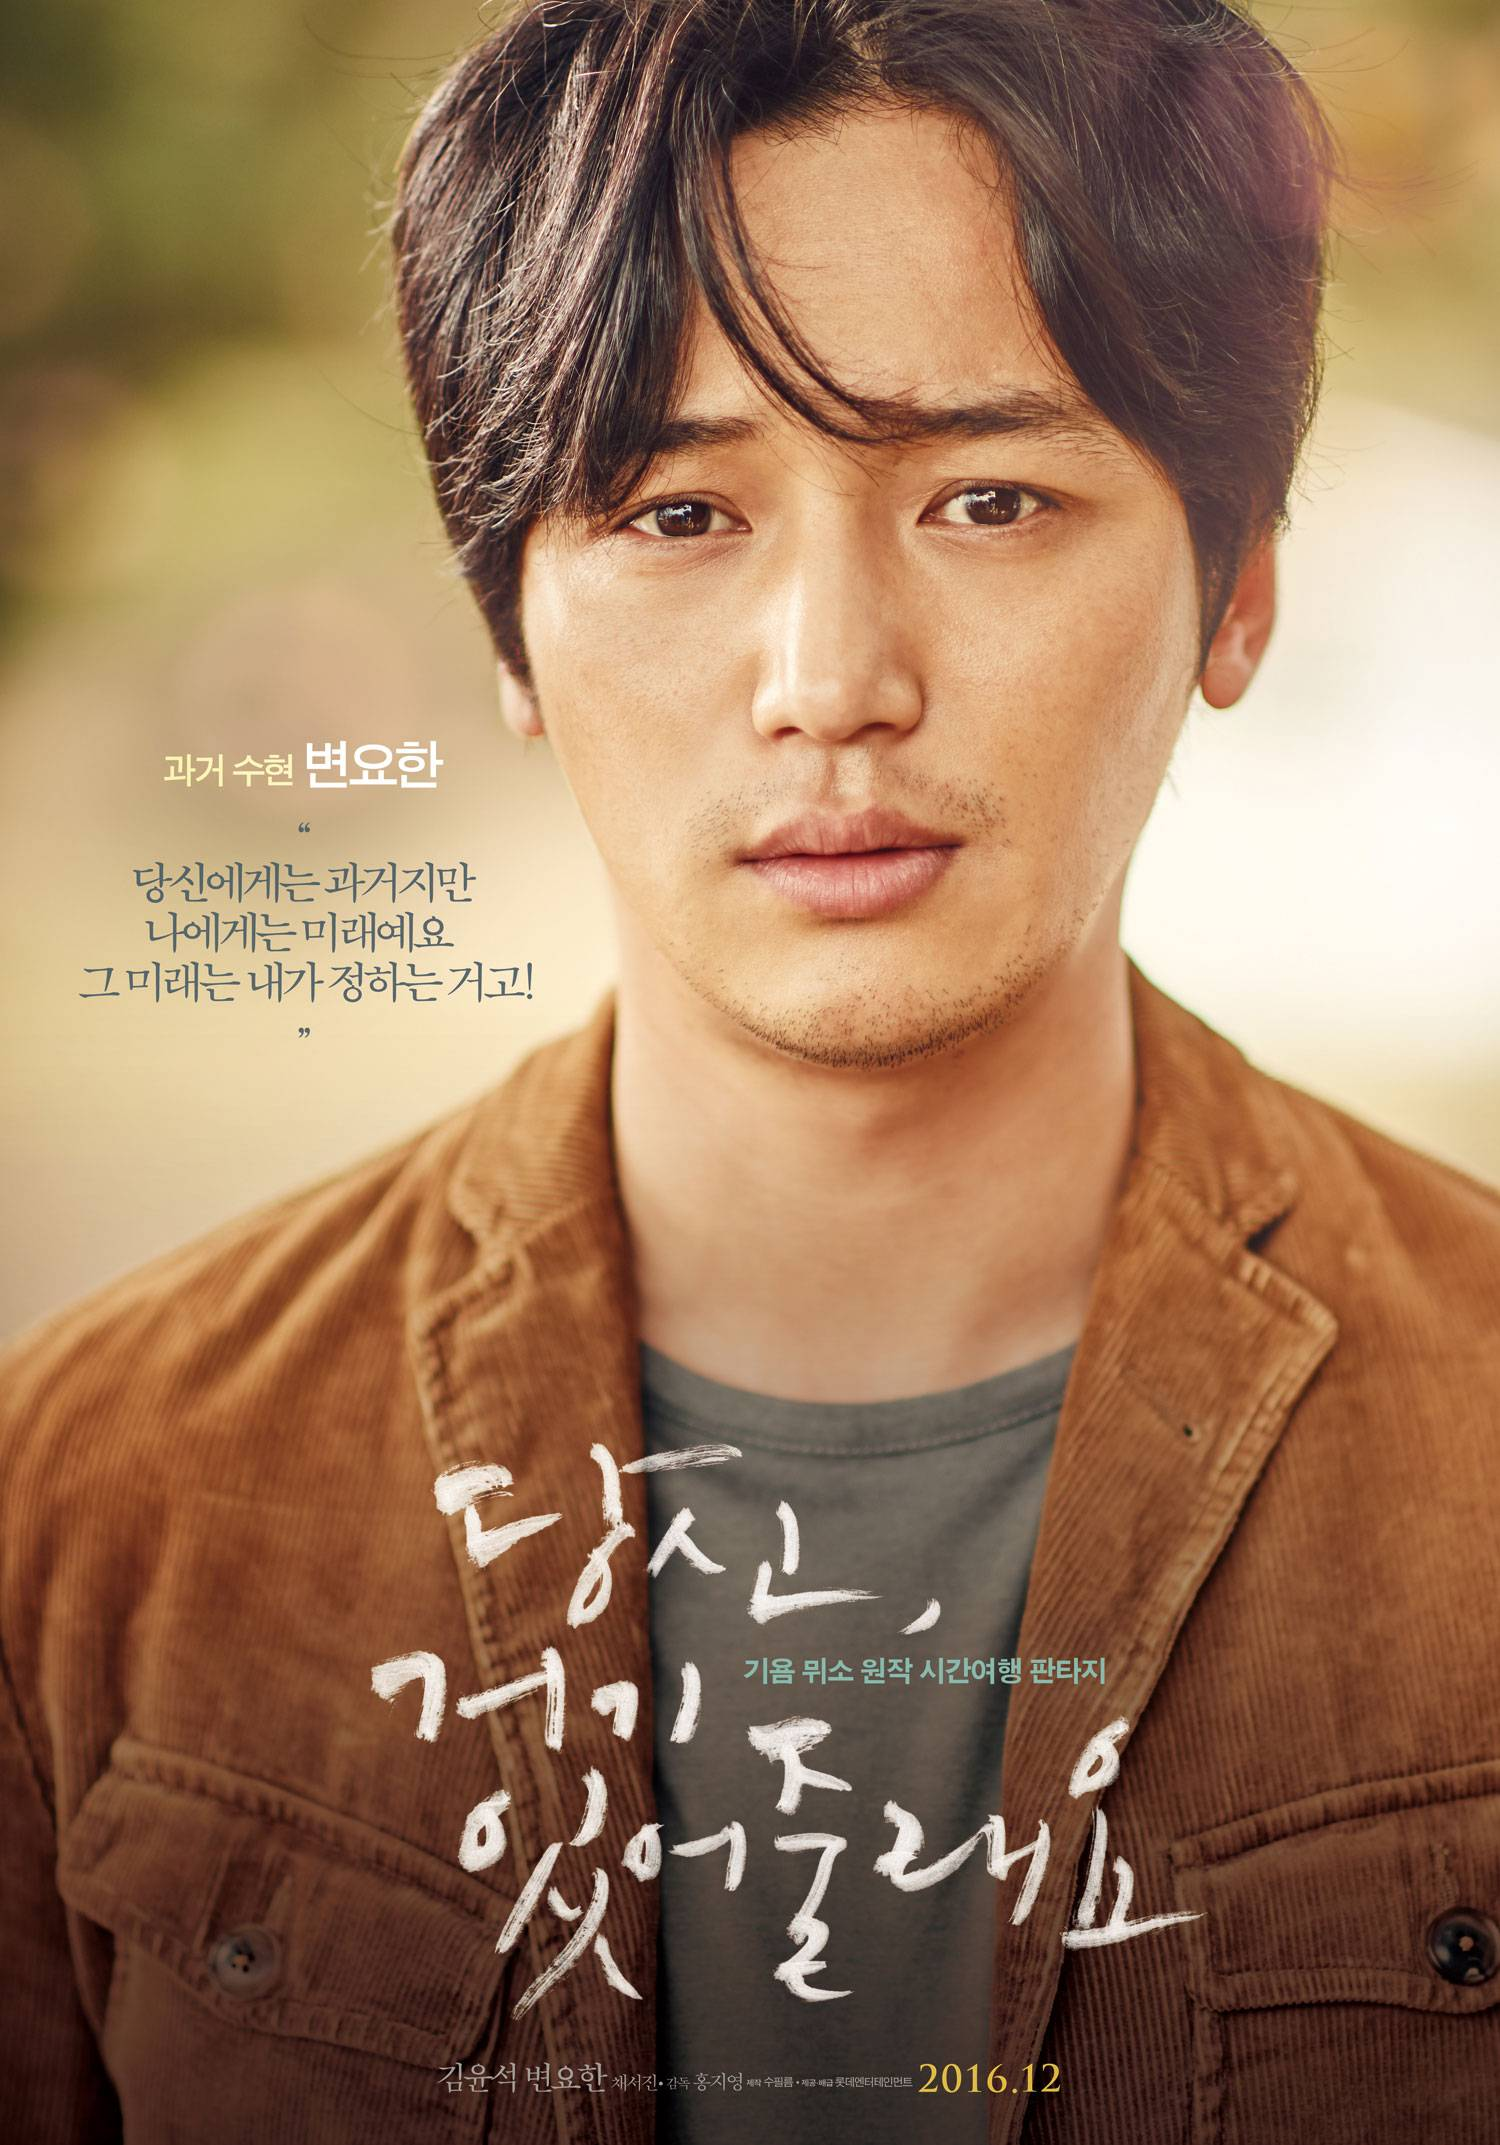 Added New Posters Stills And V App Preview Video For The Upcoming Korean Movie Will You Be There